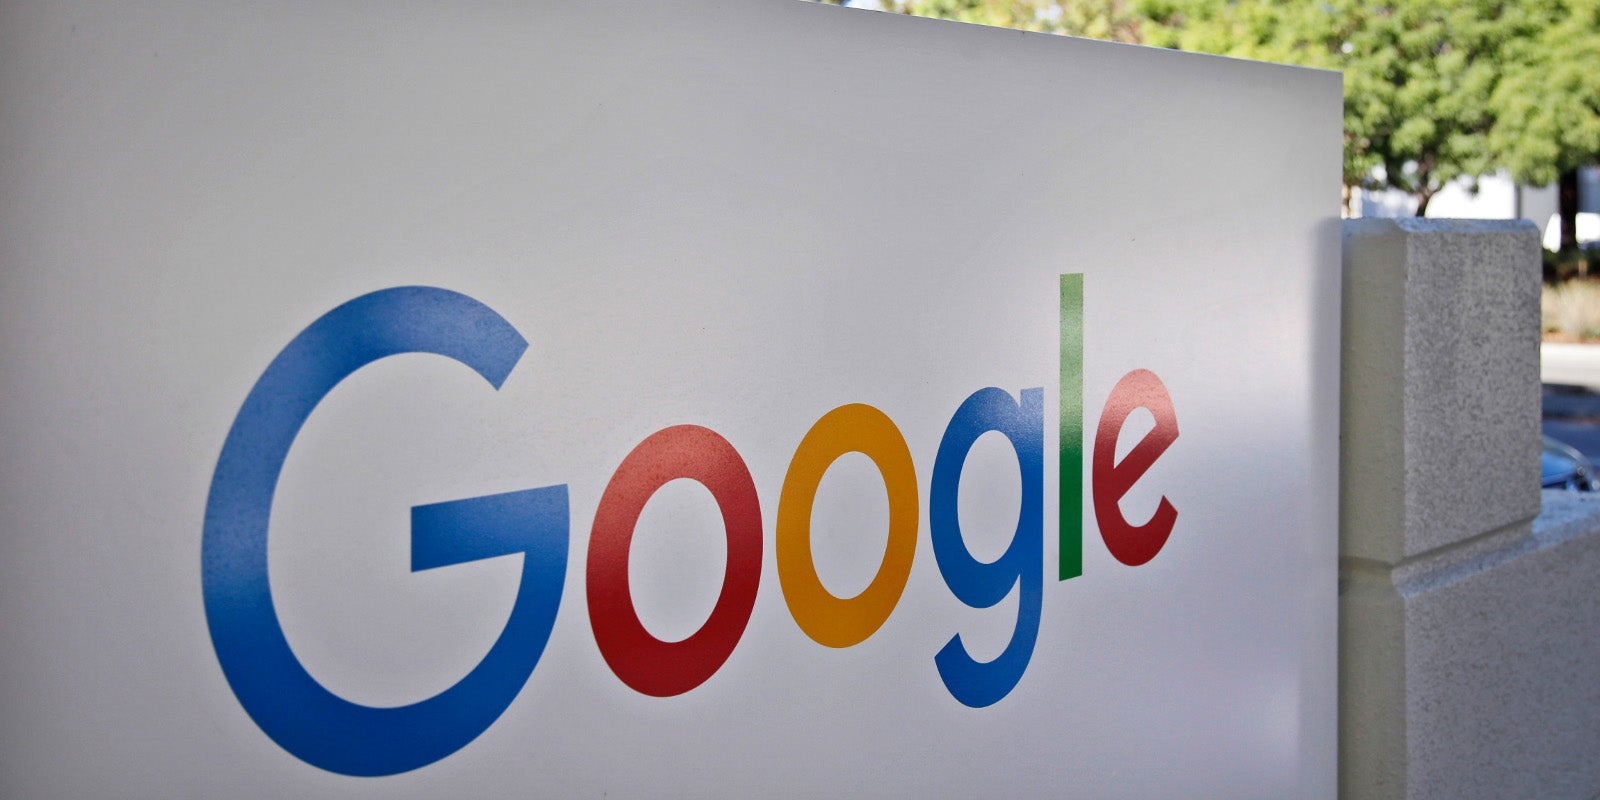 Australian Court Holds Google Responsible for Linking to Defamatory Websites